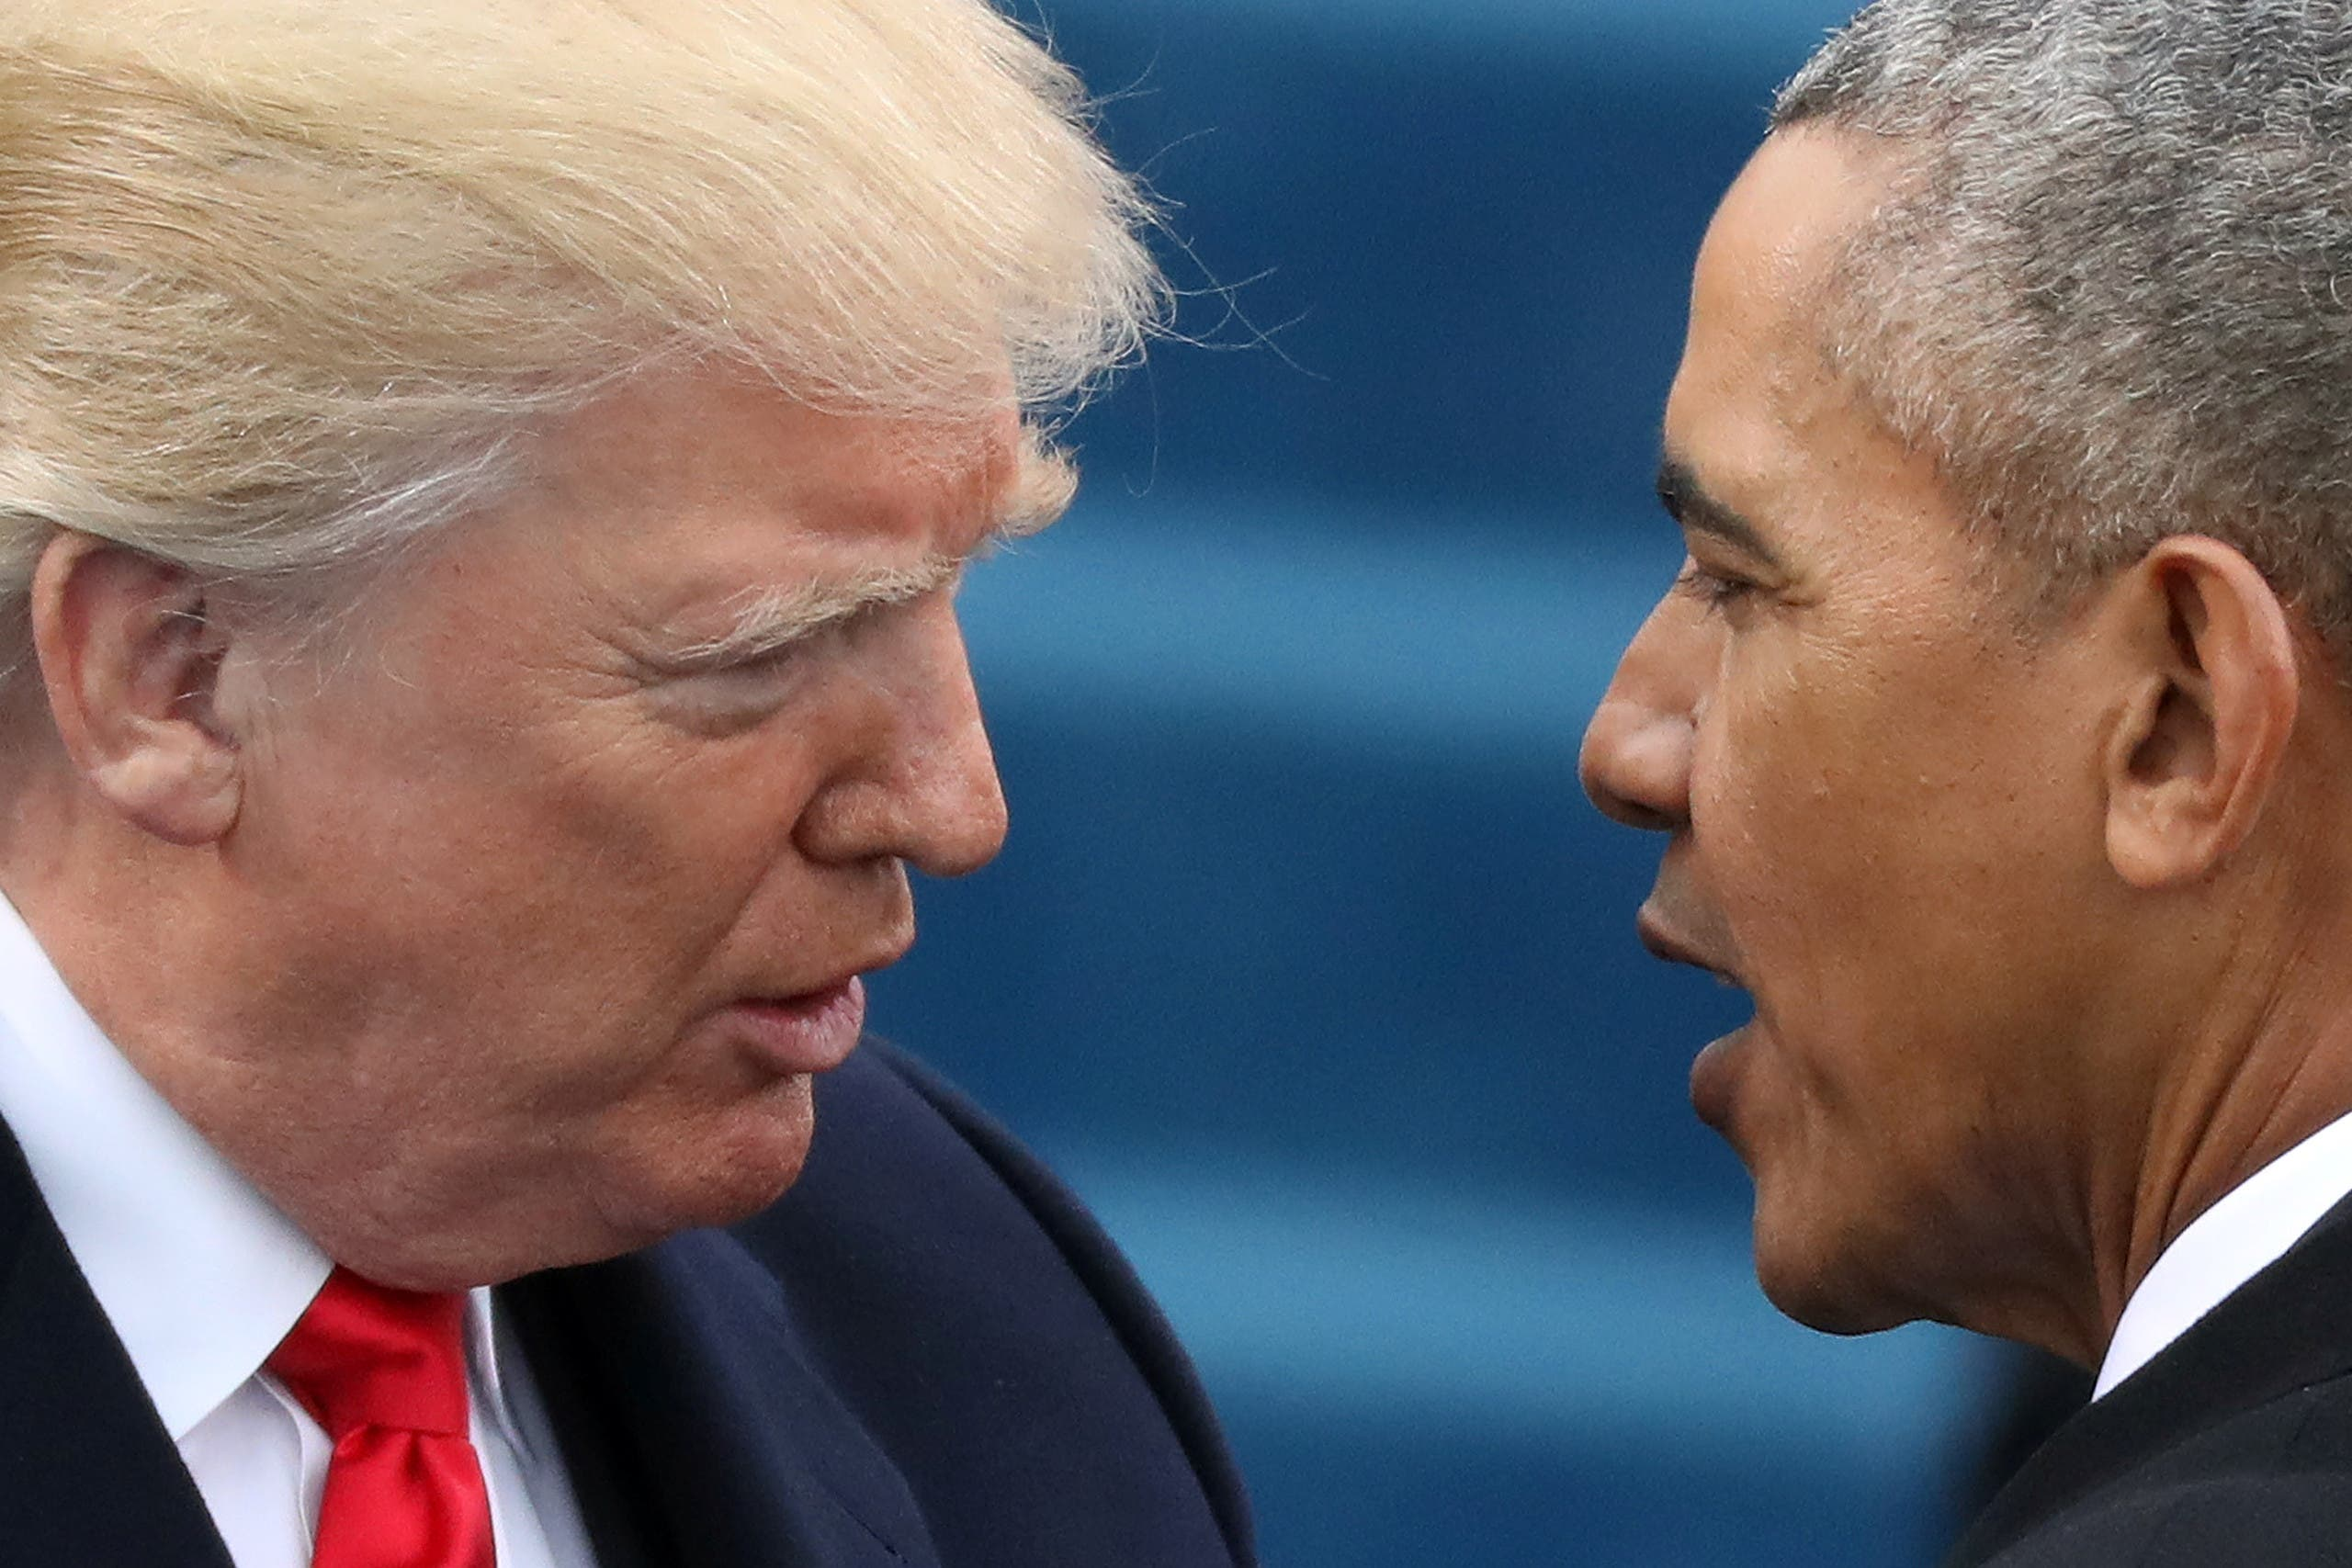 U.S. President Barack Obama (R) greets President-elect Donald Trump at inauguration ceremonies swearing in Trump as president on the West front of the U.S. Capitol in Washington, U.S., January 20, 2017. REUTERS/Carlos Barria